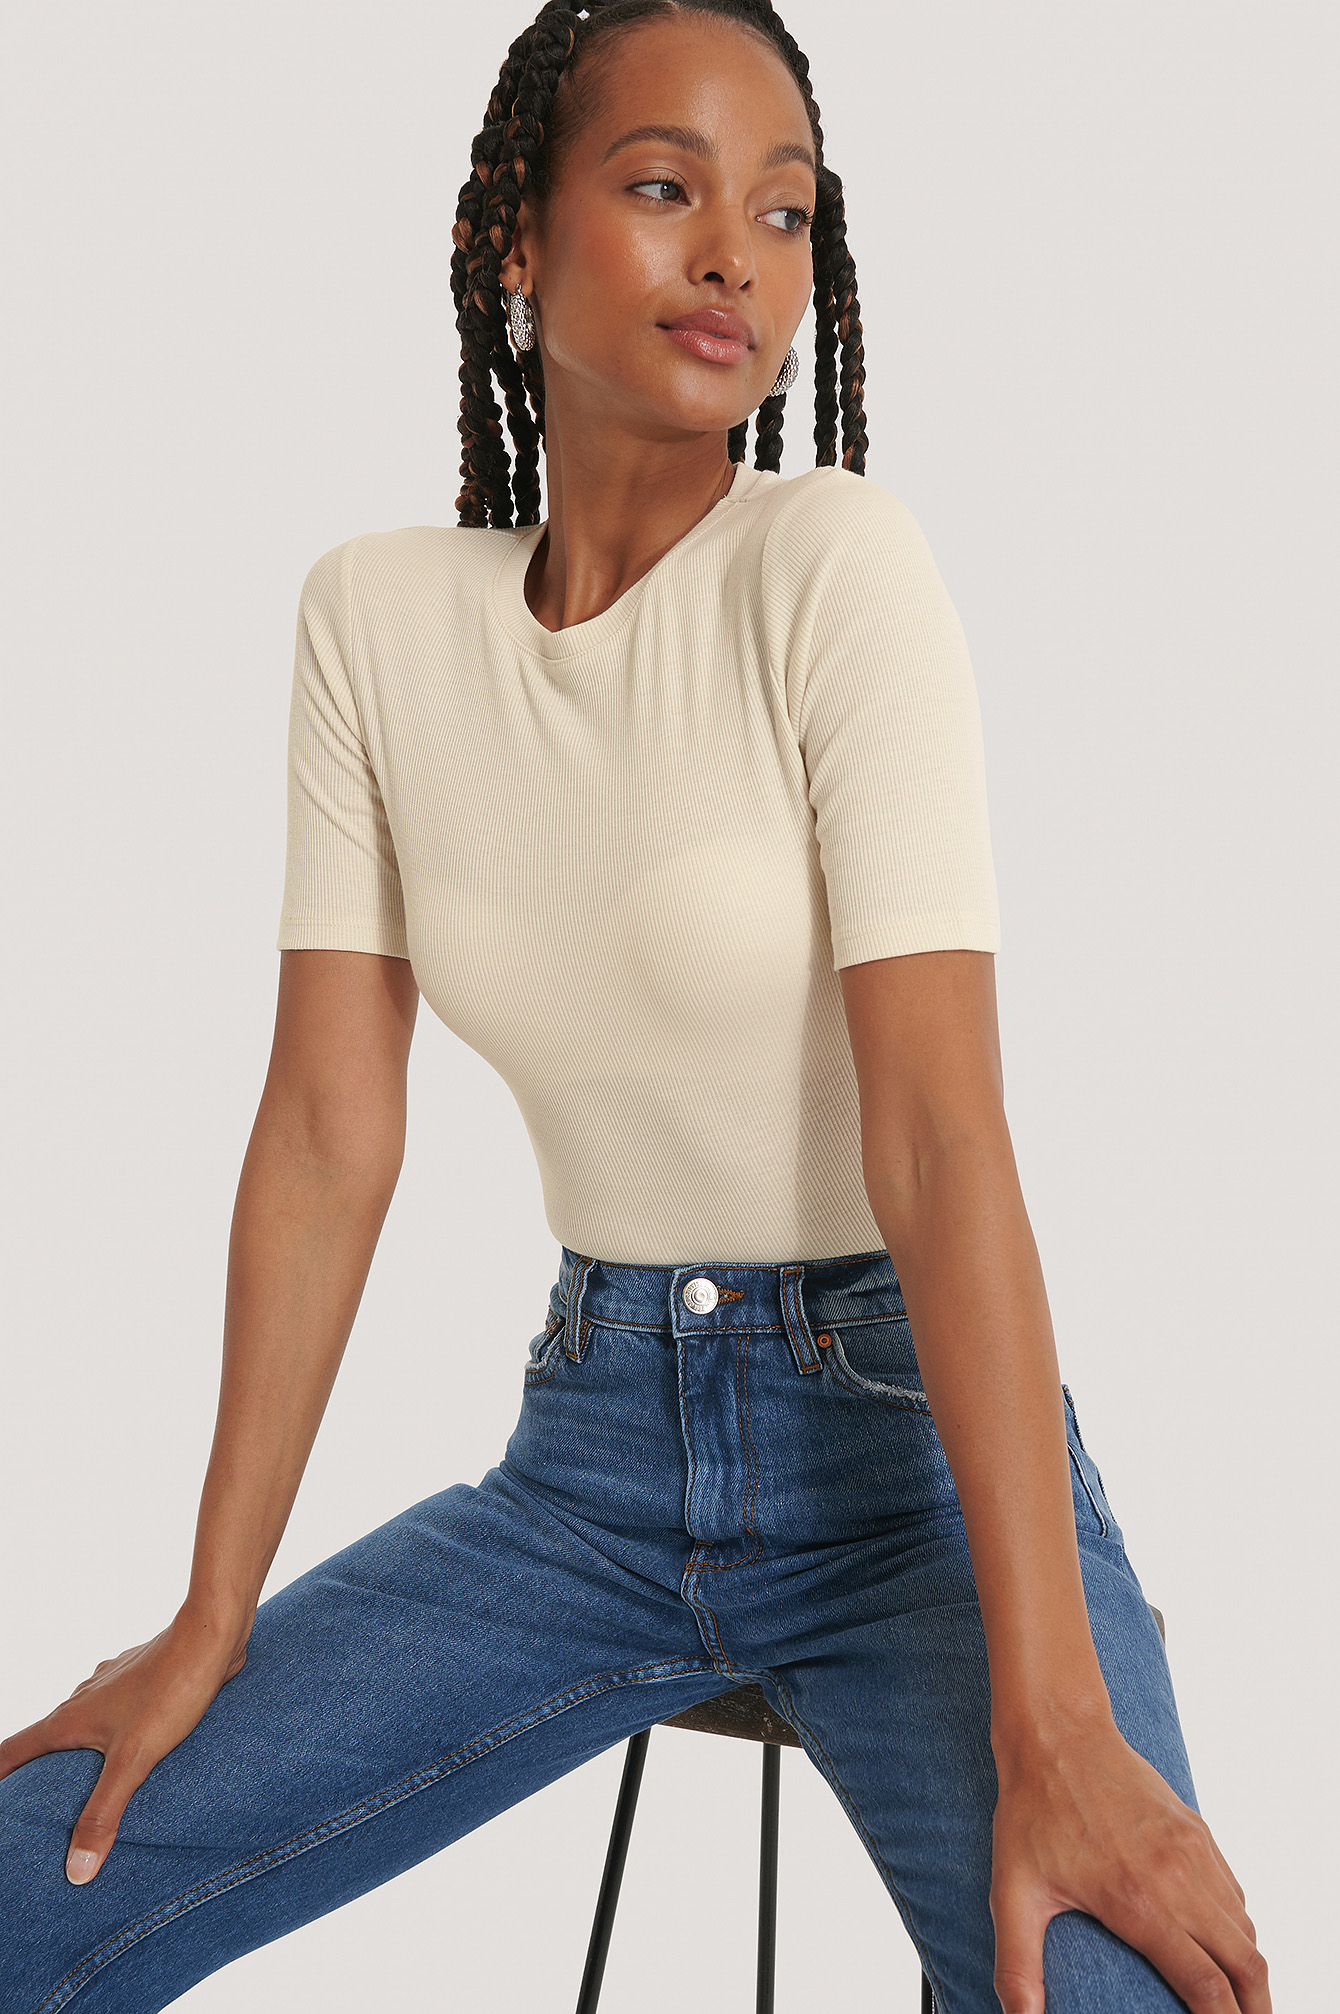 Dusty Light Beige Round Neck Ribbed Top